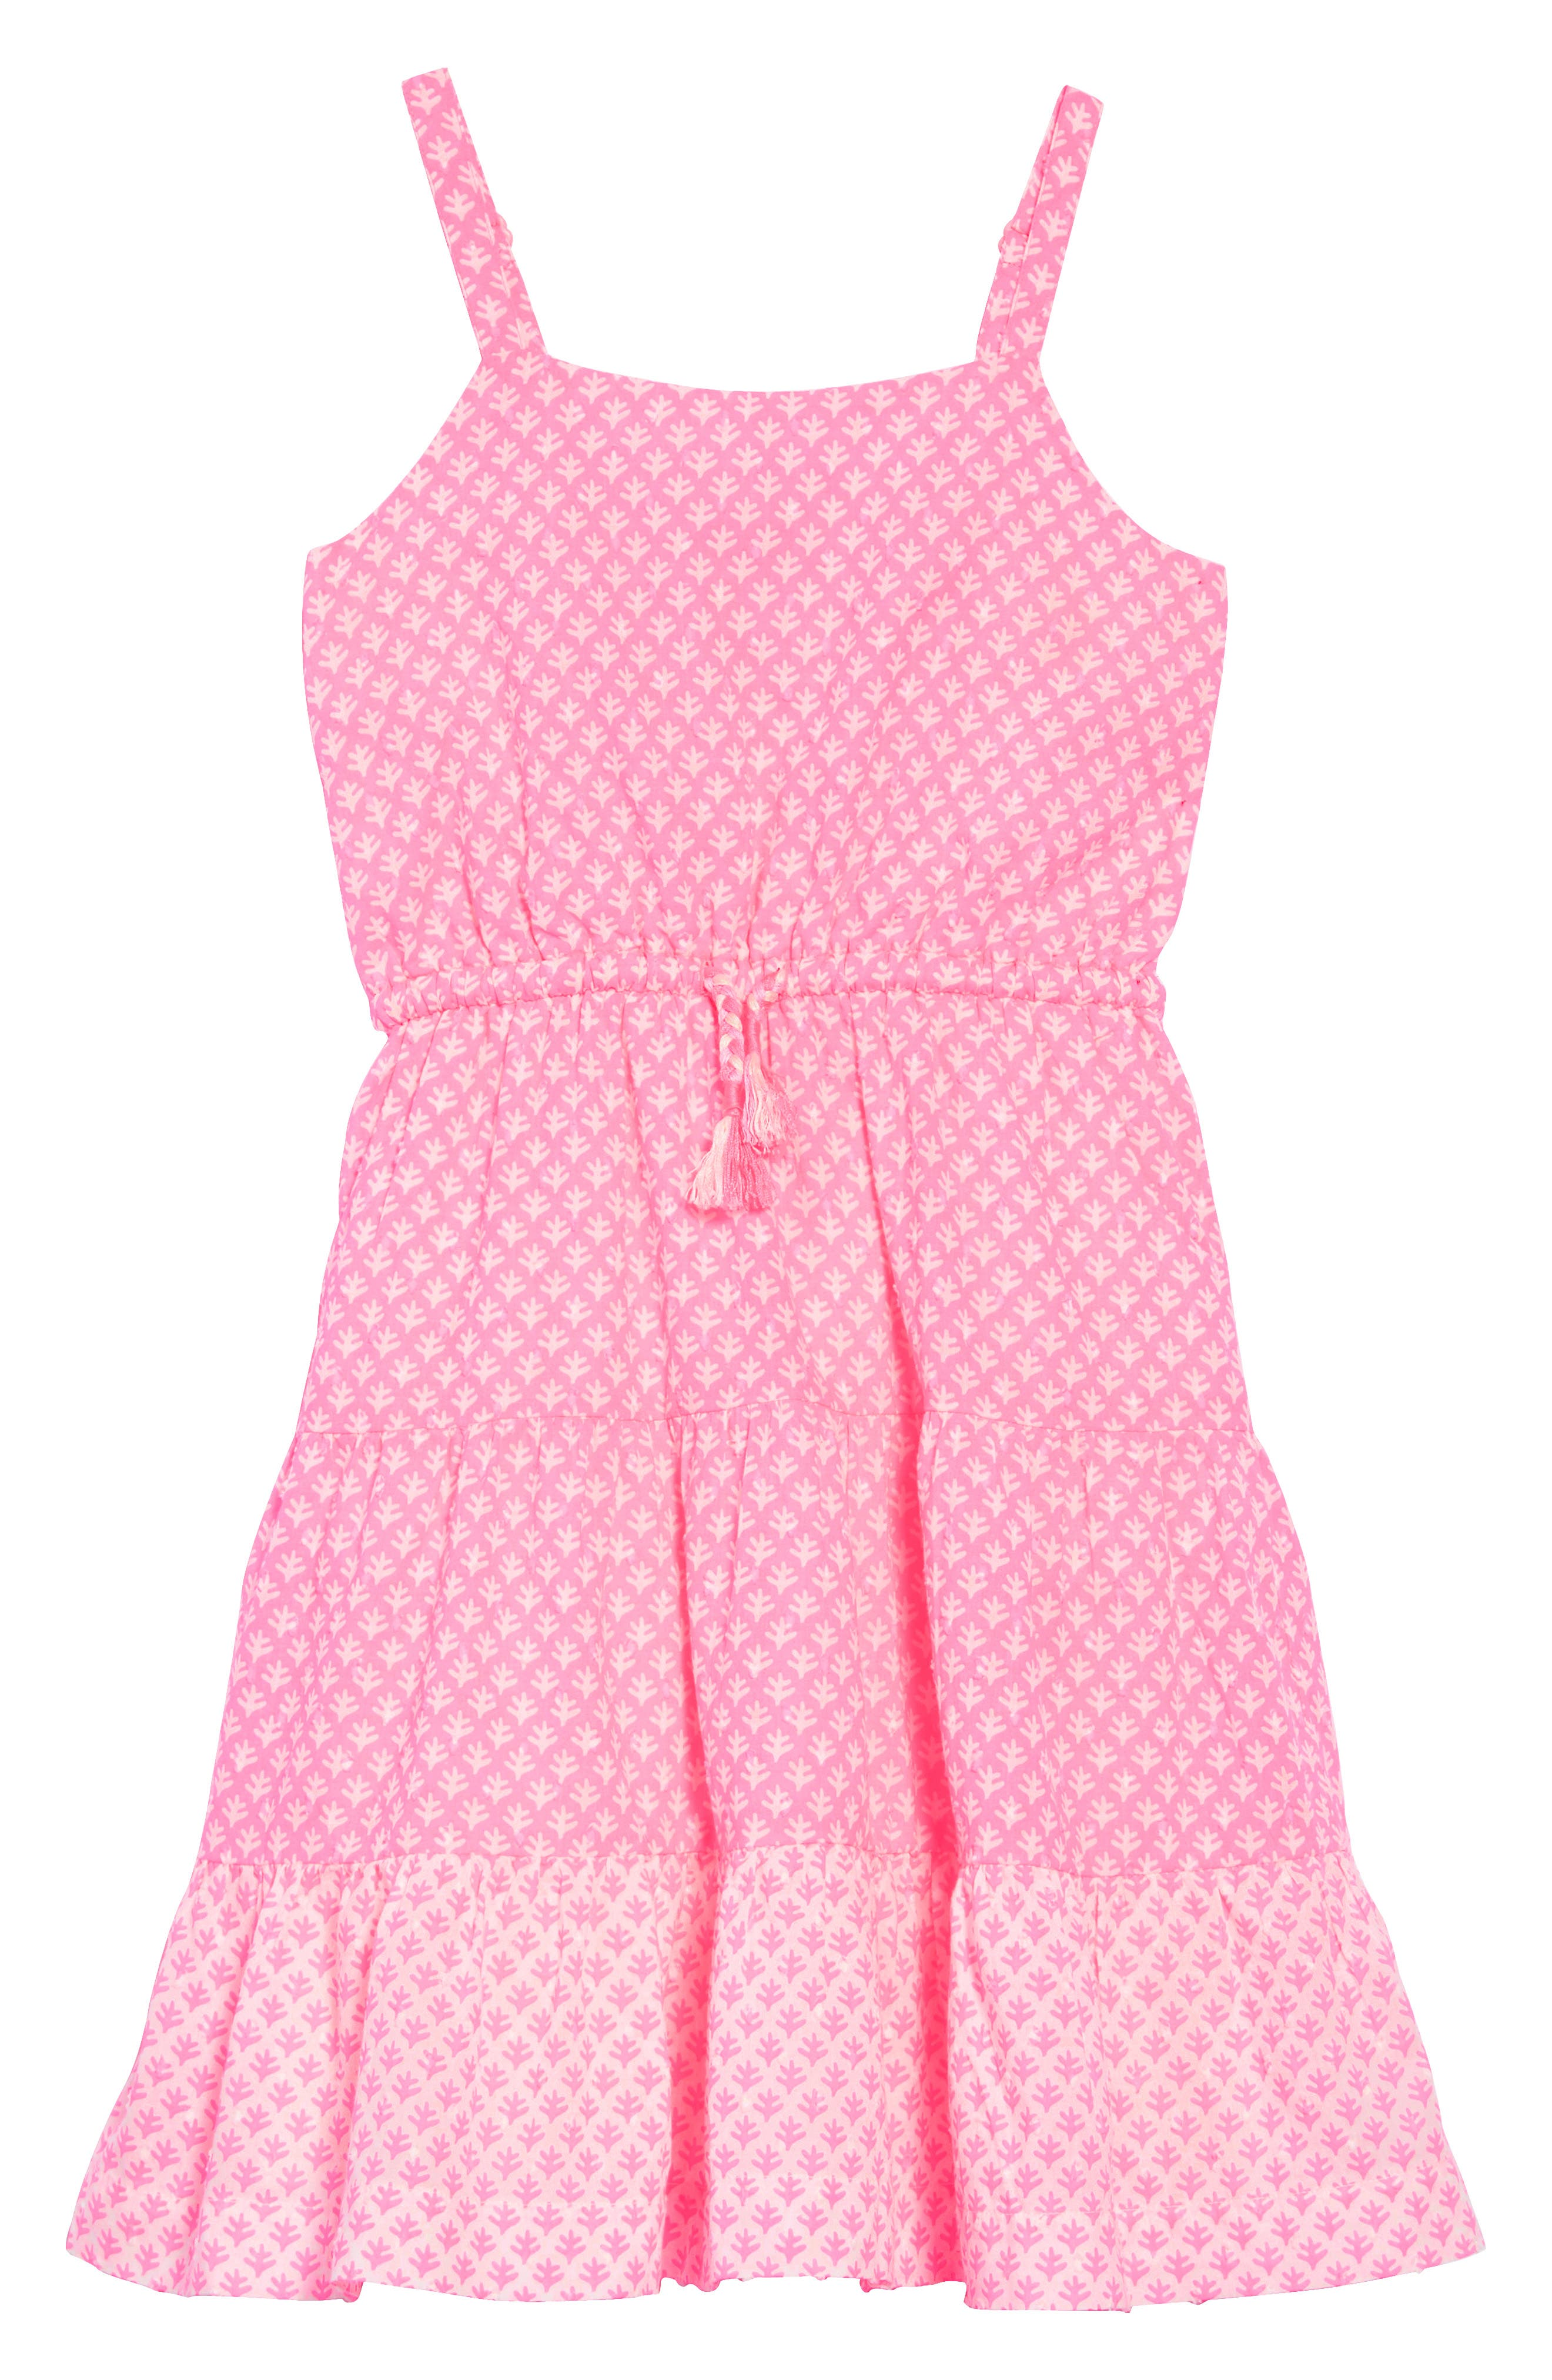 Tiered Strappy Woven Dress,                             Main thumbnail 1, color,                             Knockout Pink/ Ivory Geo Coral